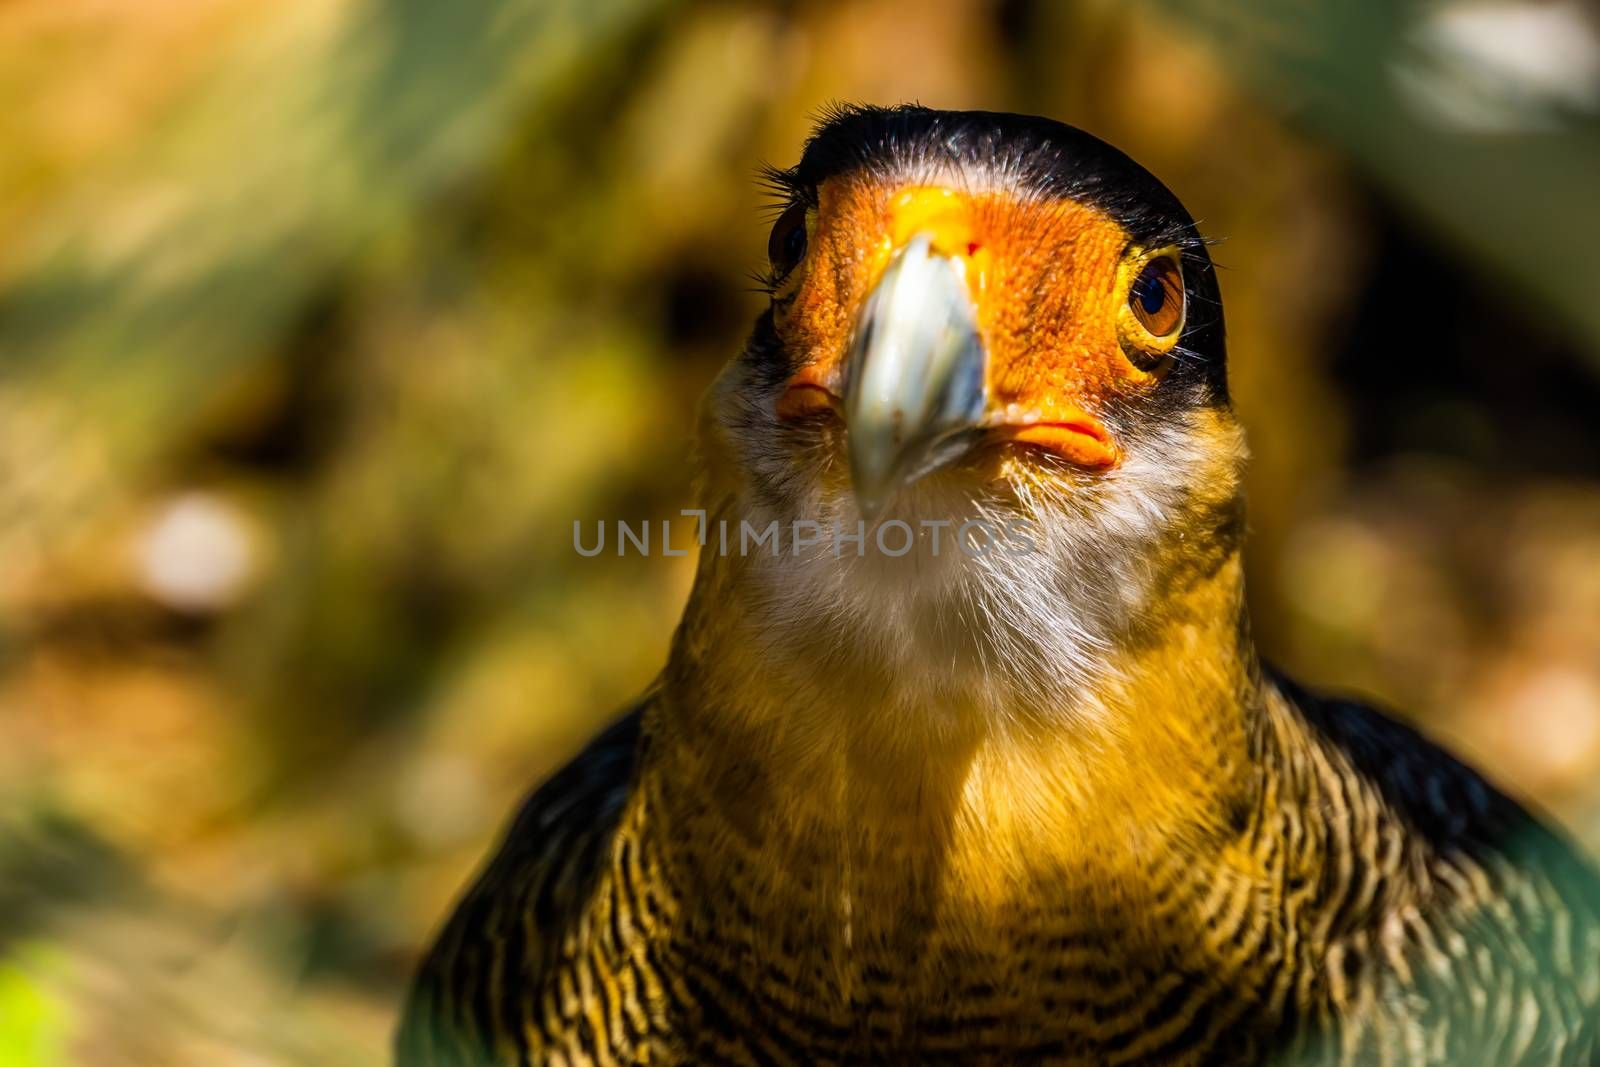 beautiful closeup portrait of the face of a southern crested caracara, tropical bird specie from america